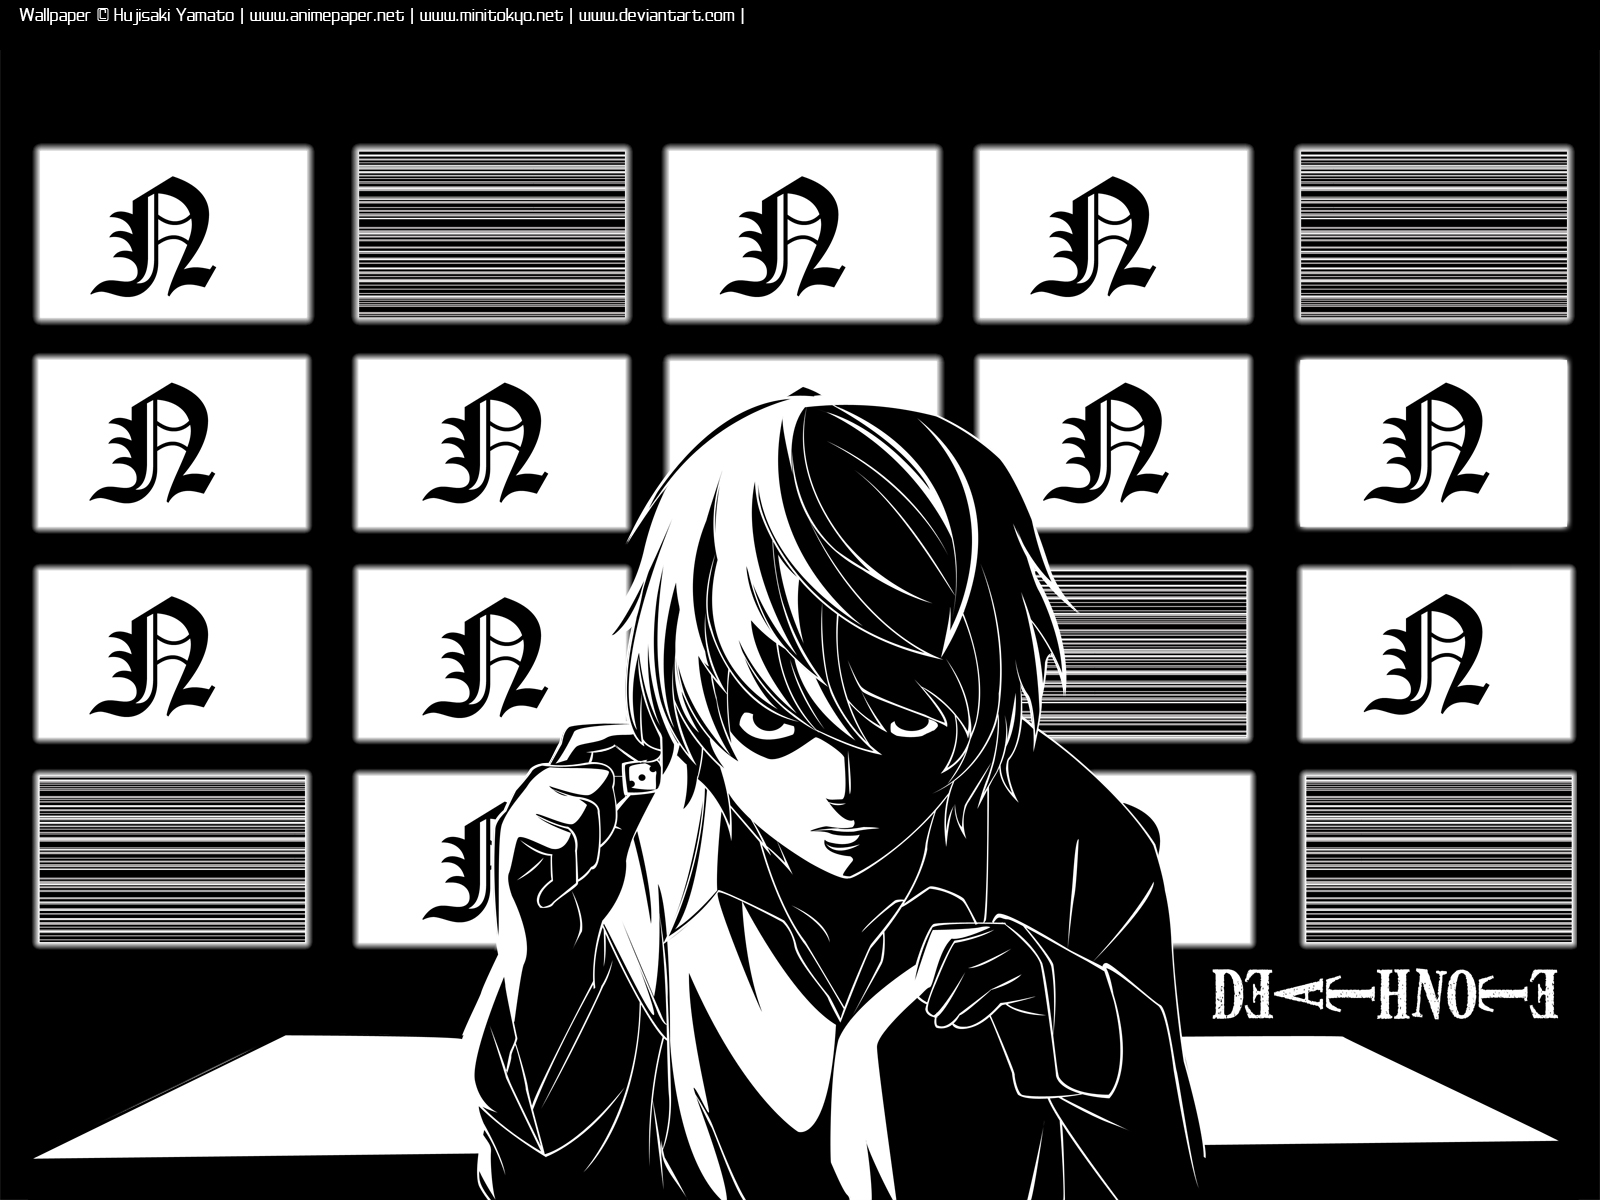 Psychological Anime Manga Images Near Wallpaper Note Hd Wallpaper And Background Photos